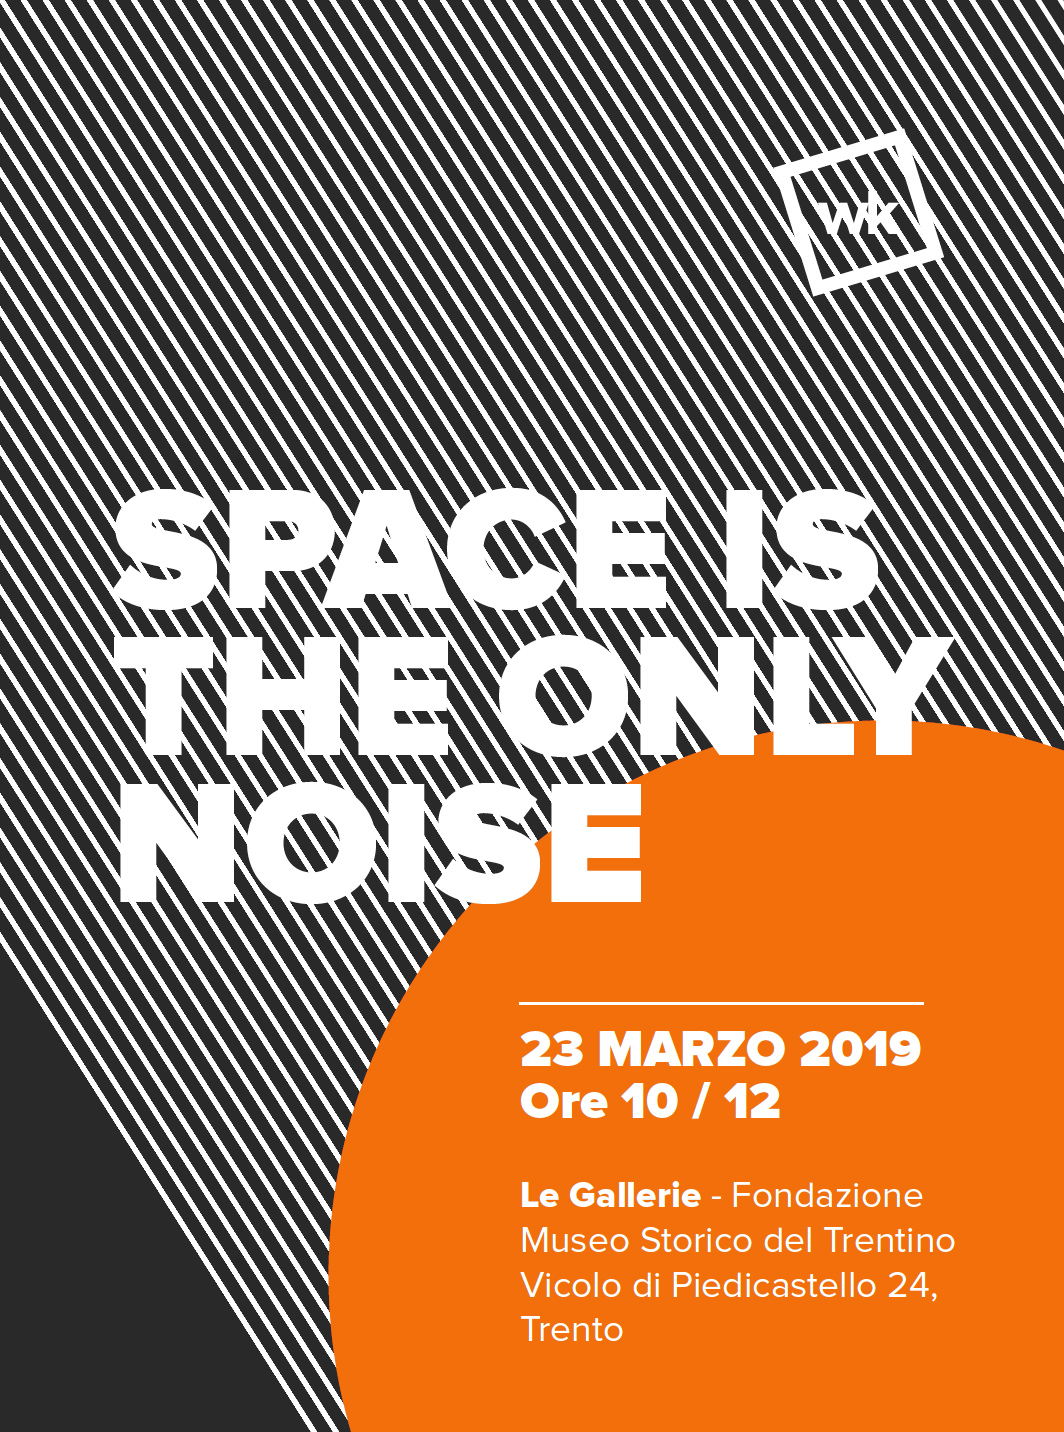 Space is the only noise